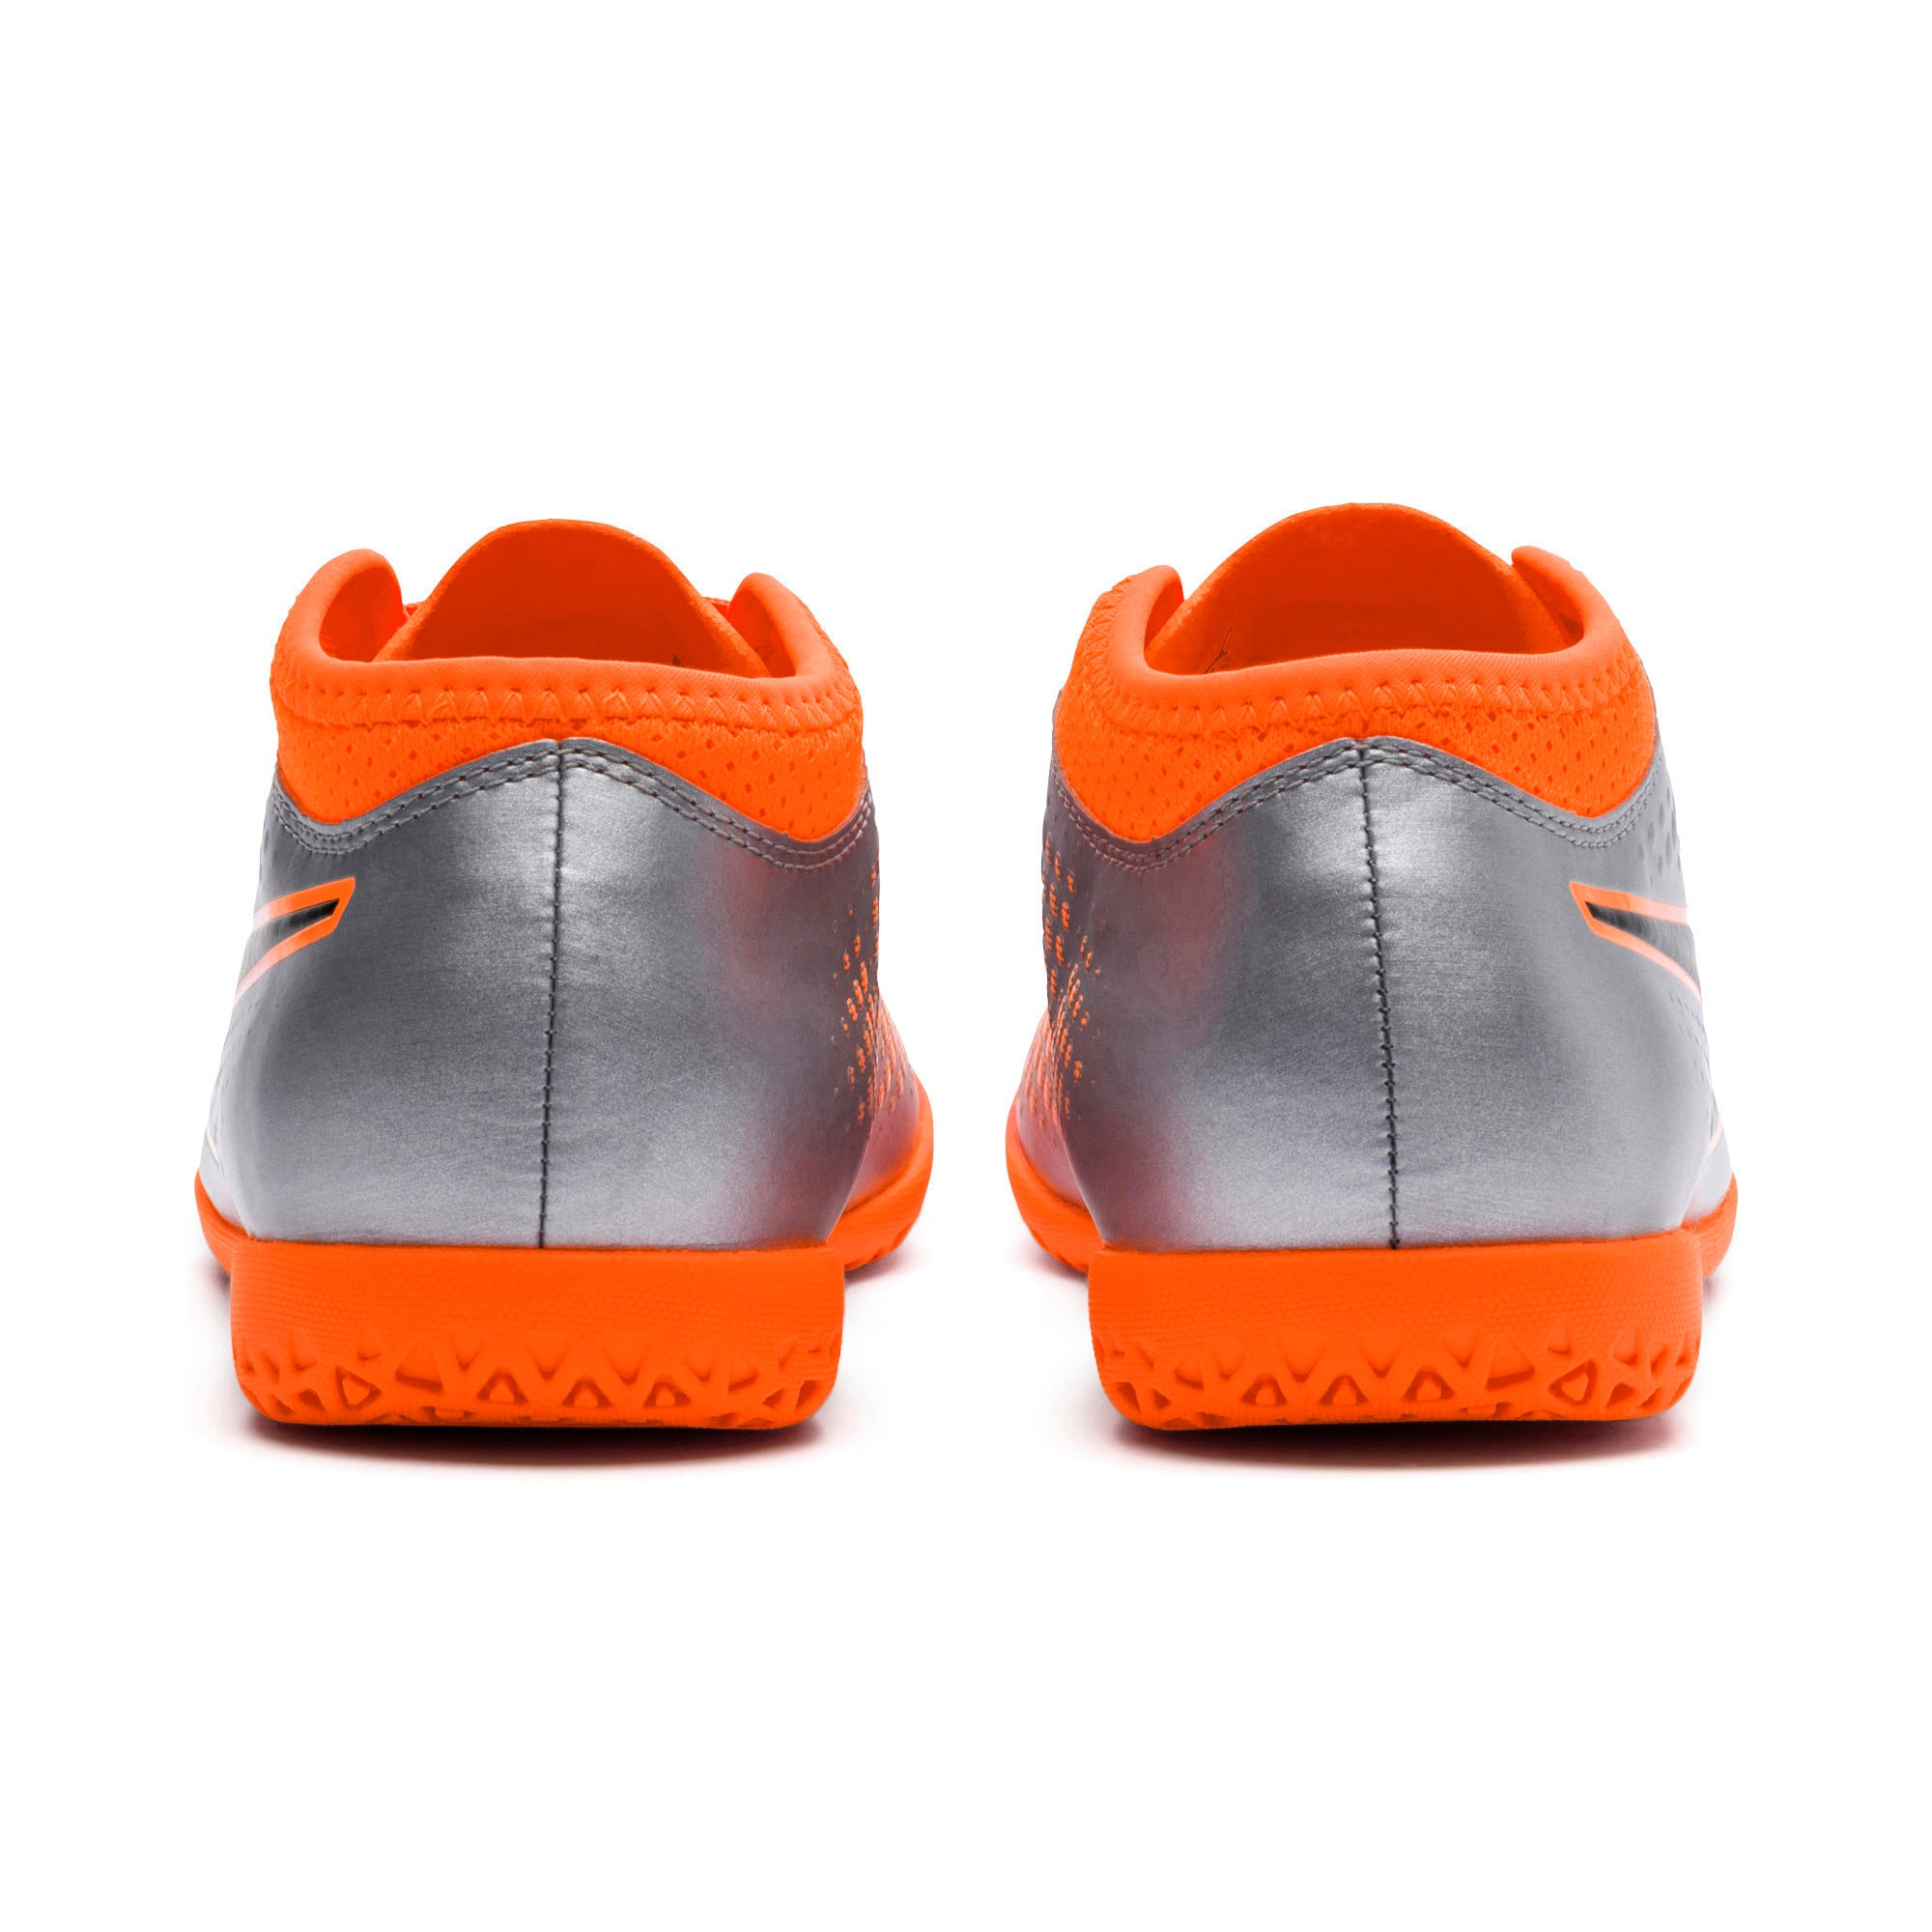 Thumbnail 3 of PUMA ONE 4 Synthetic IT Kids' Football Shoes, Silver-Orange-Black, medium-IND